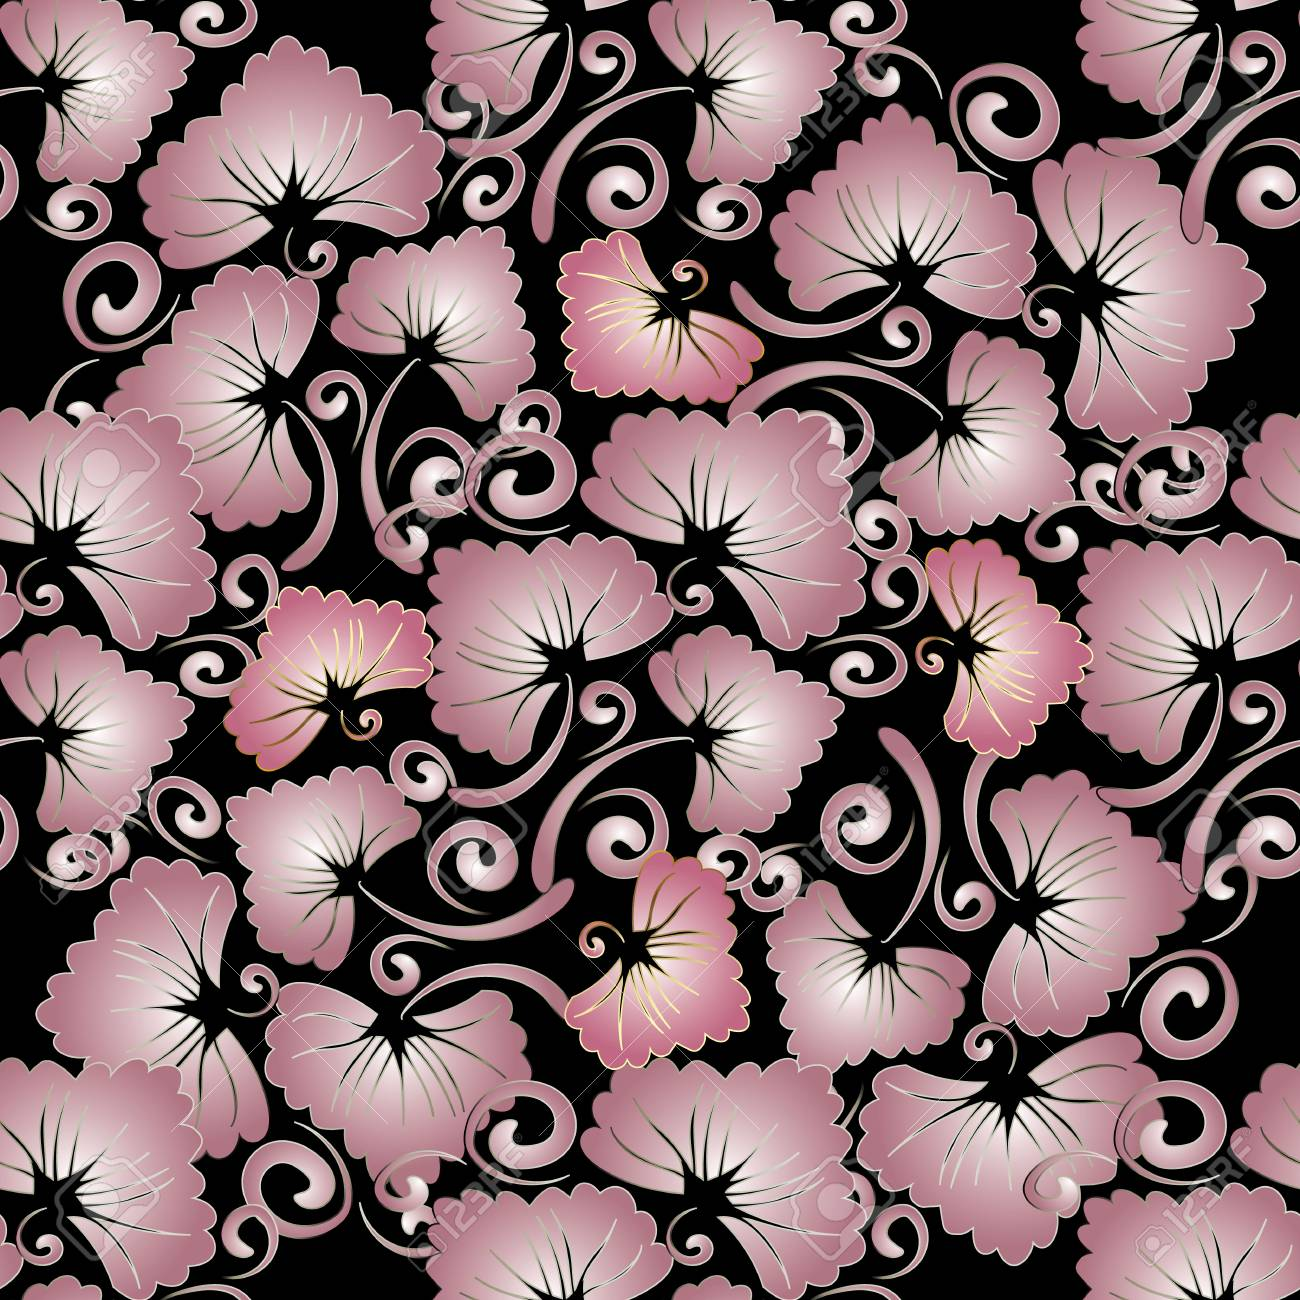 Floral Vintage Seamless Pattern Abstract Vector Black Background With Pink Leaves Flowers Swirl